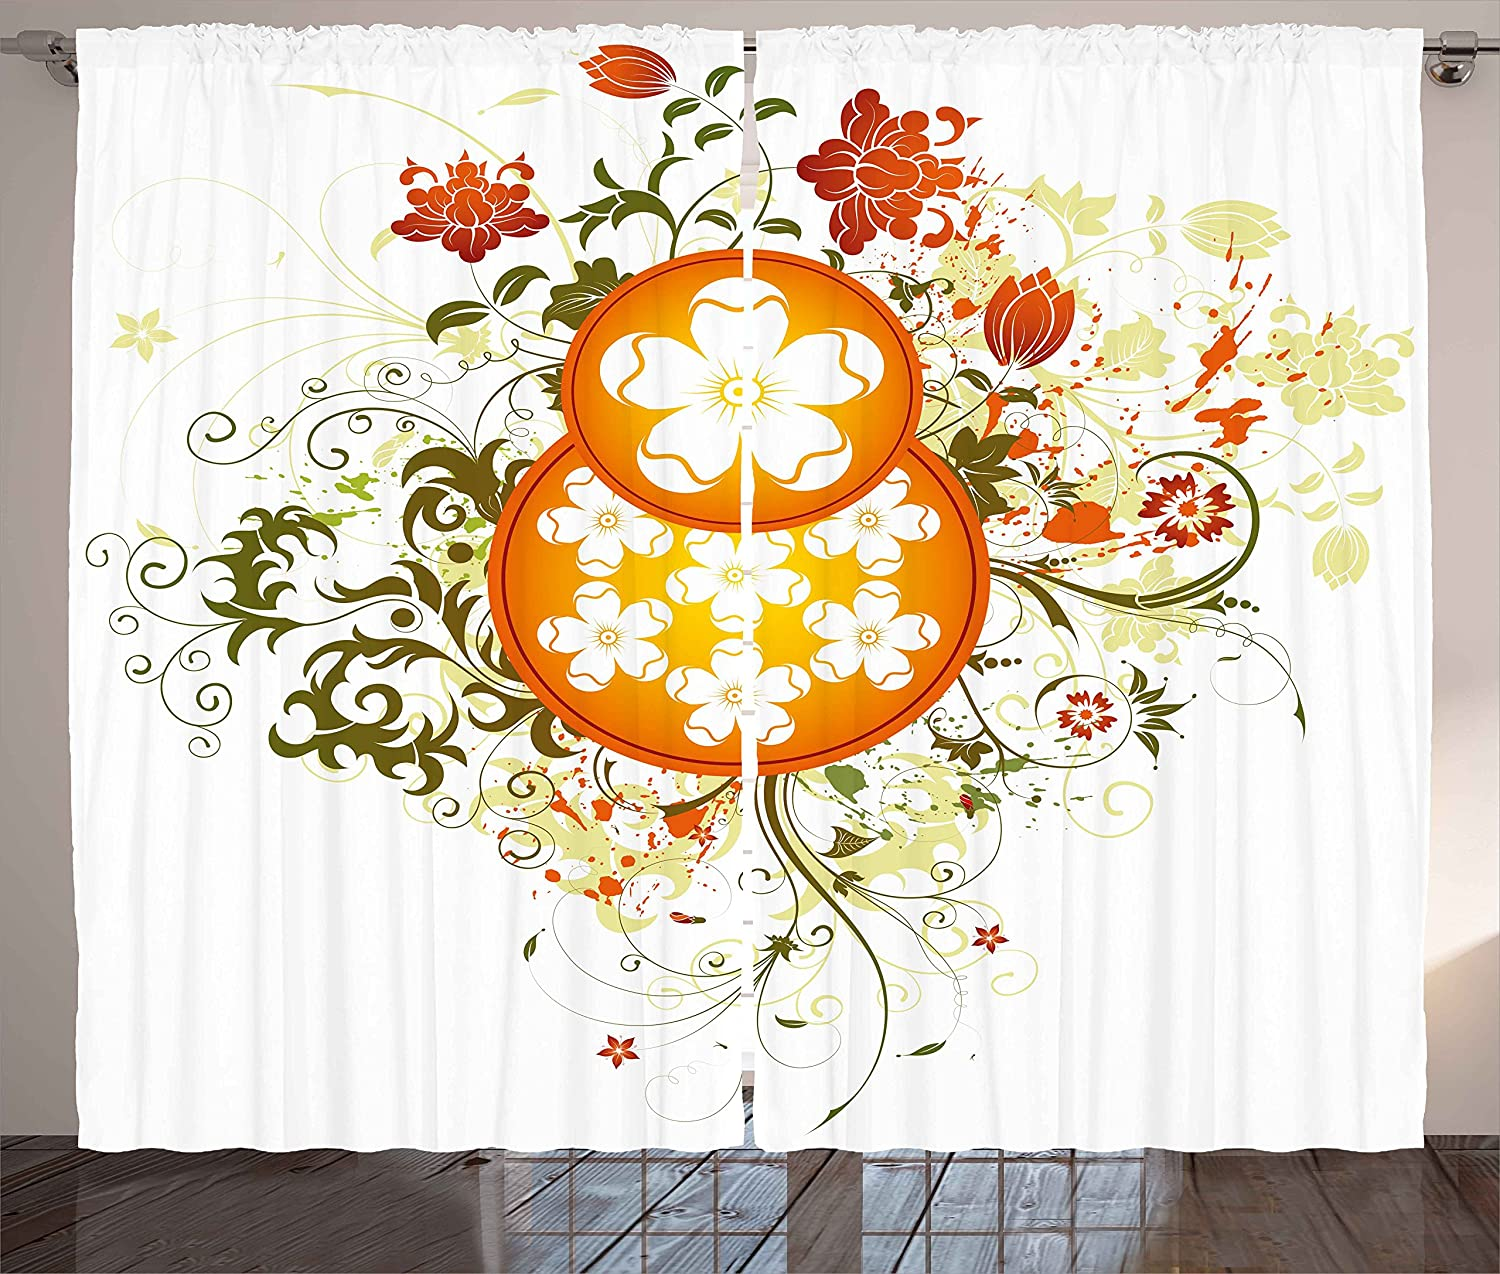 Ambesonne Floral quality assurance Curtains Max 43% OFF Swirled Circu with Background Flowers